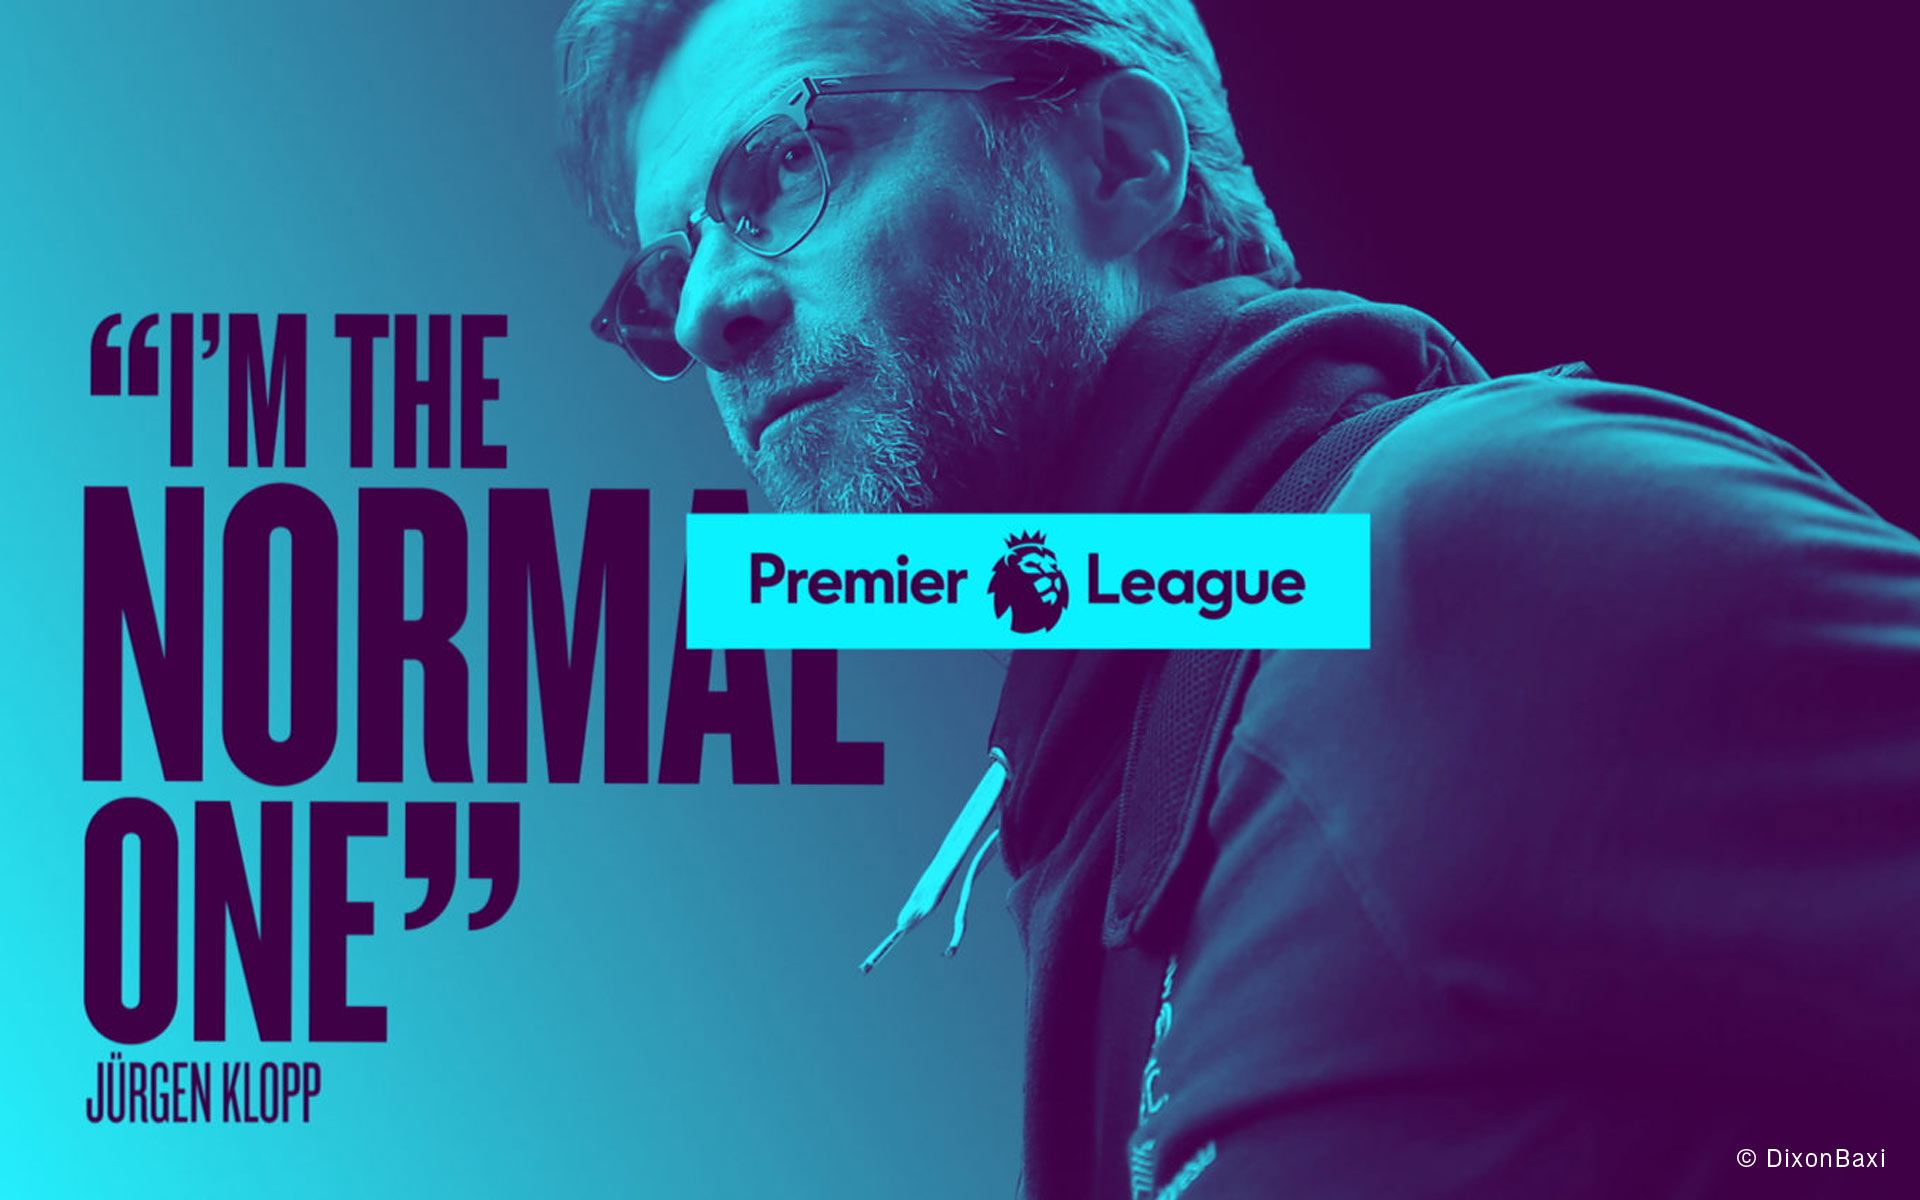 matter of design, Redesign. Premier League, Screendesign